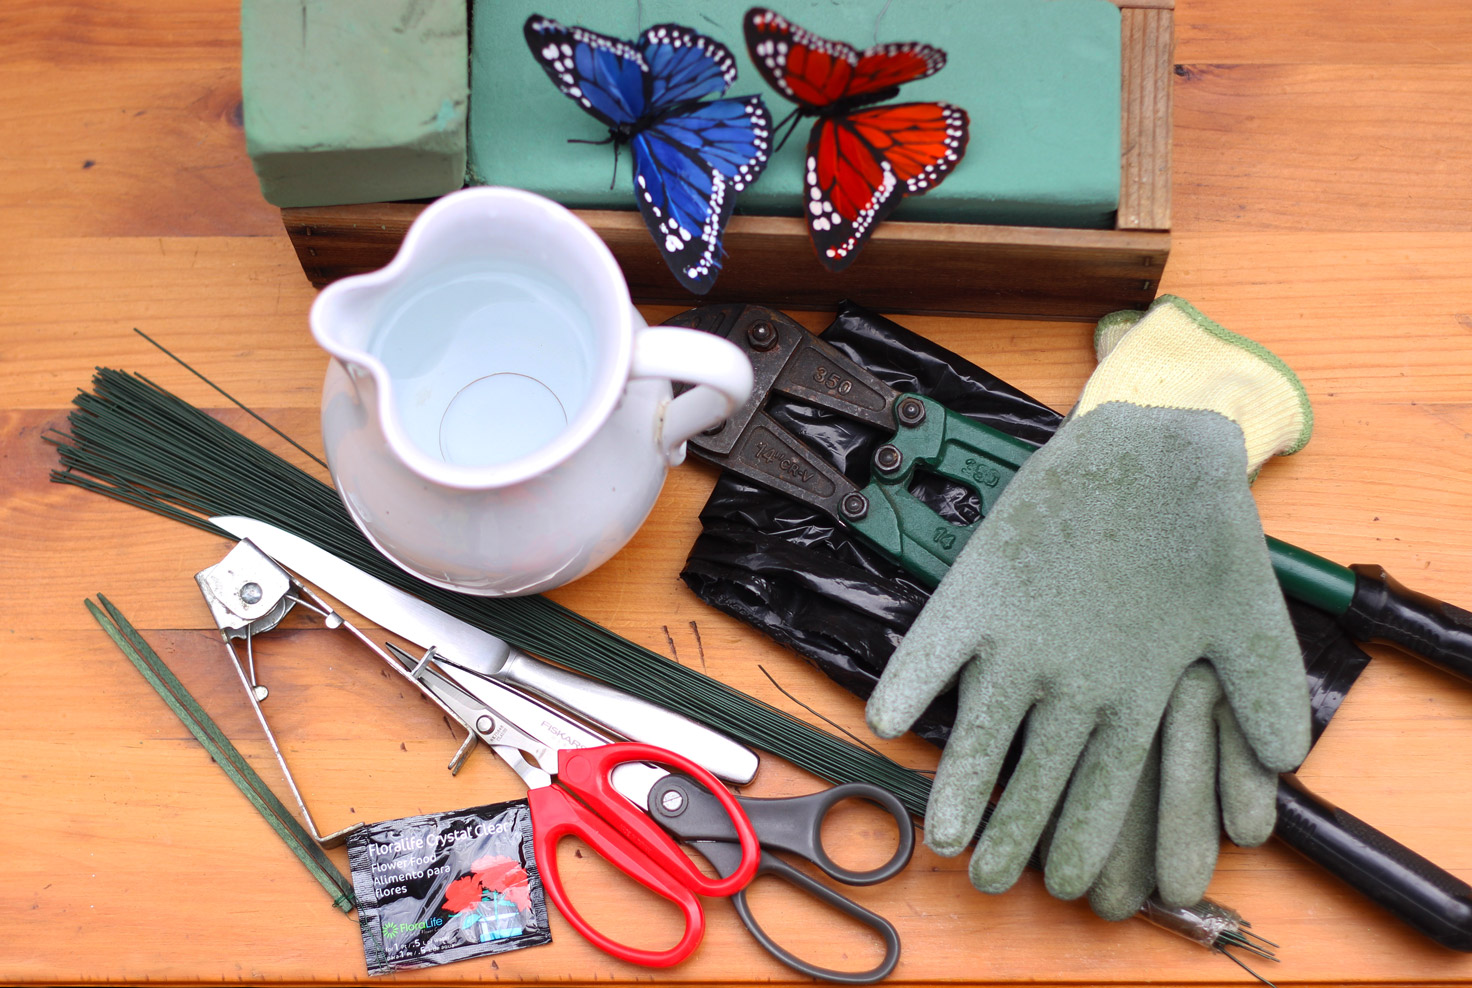 Here are the supplies and tools you will use.